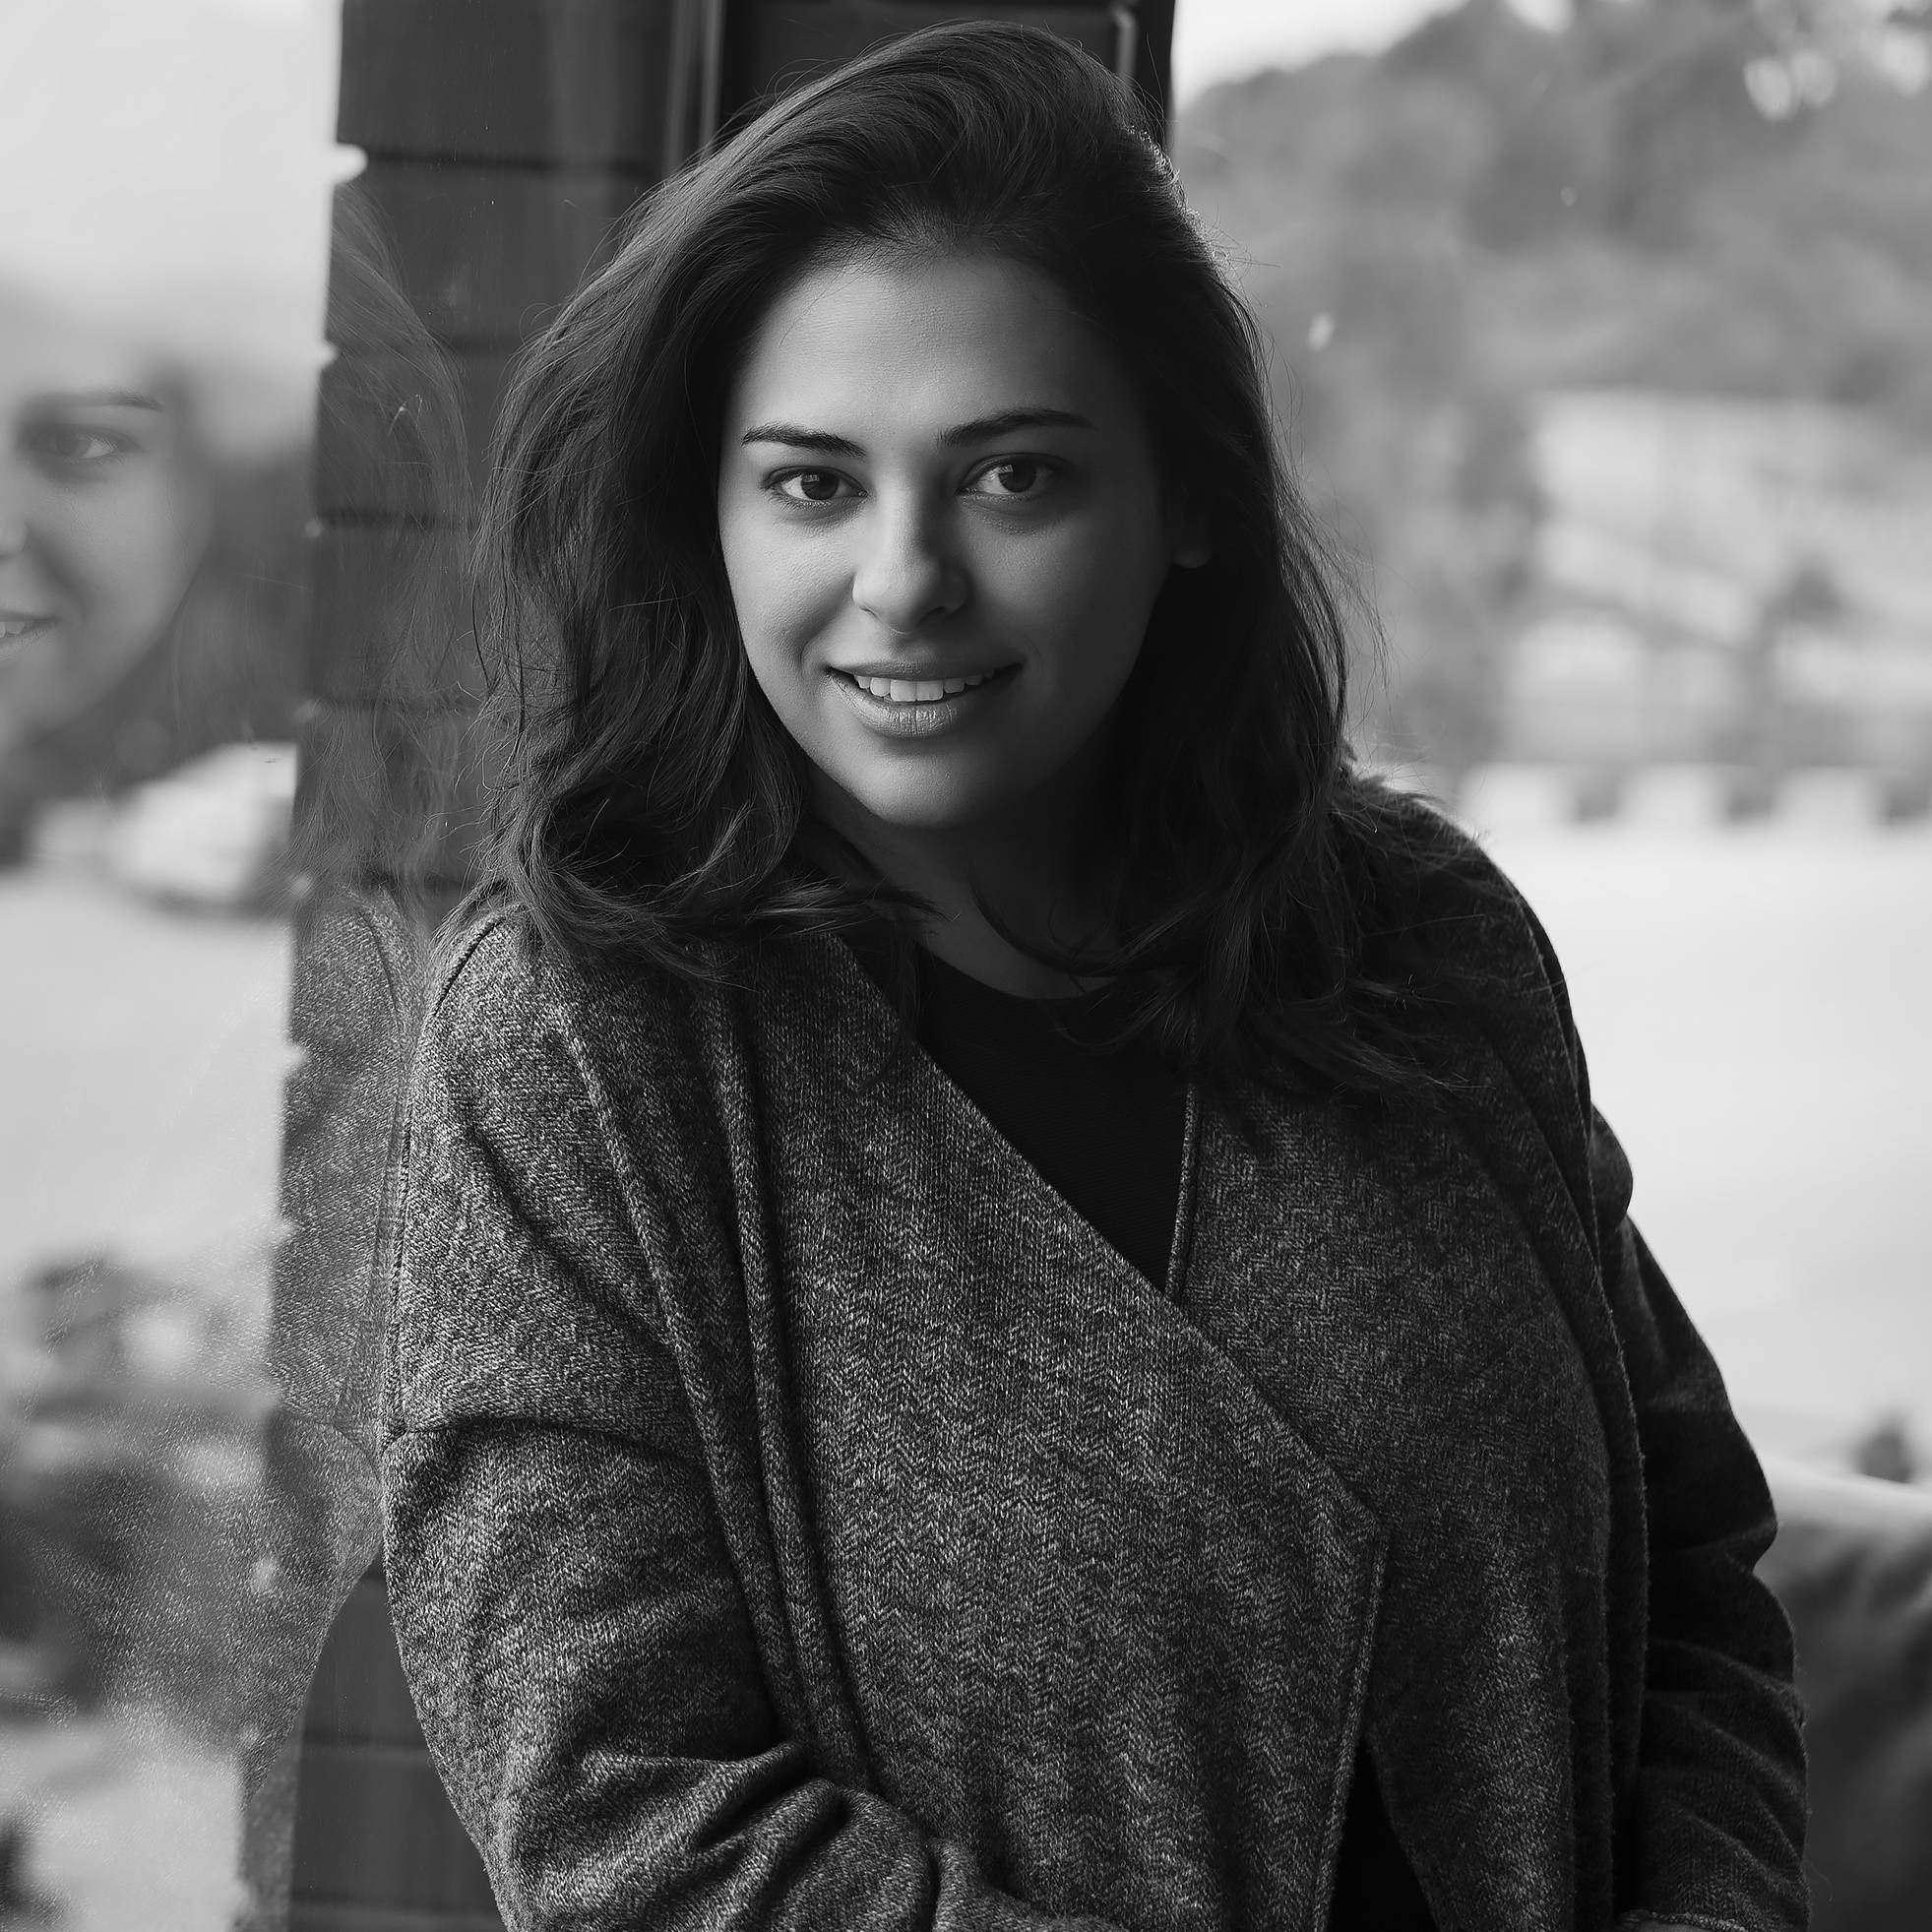 SARA FARID  IS A DOCUMENTARY PHOTOJOURNALIST BASED IN PAKISTAN.  READ FULL BIO HERE .  VIEW HER WORK HERE . MENTORSHIP BEAT: BREAKING NEWS, DOCUMENTARY PHOTOGRAPHY WITH A FOCUS ON GENDER AND HUMAN RIGHTS.